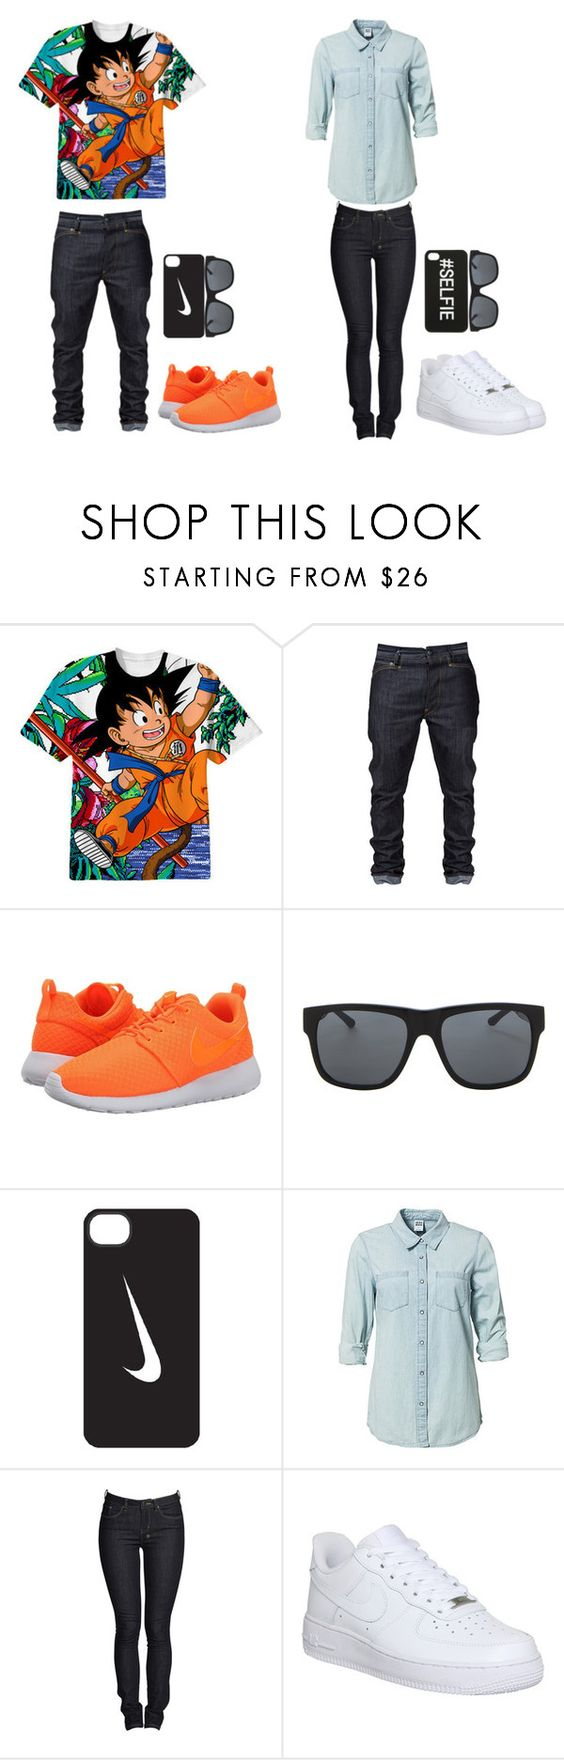 """""""Me and Bae #12"""" by typical-dresser ❤ liked on Polyvore featuring NIKE, Orlebar Brown, Vero Moda and Ksubi"""